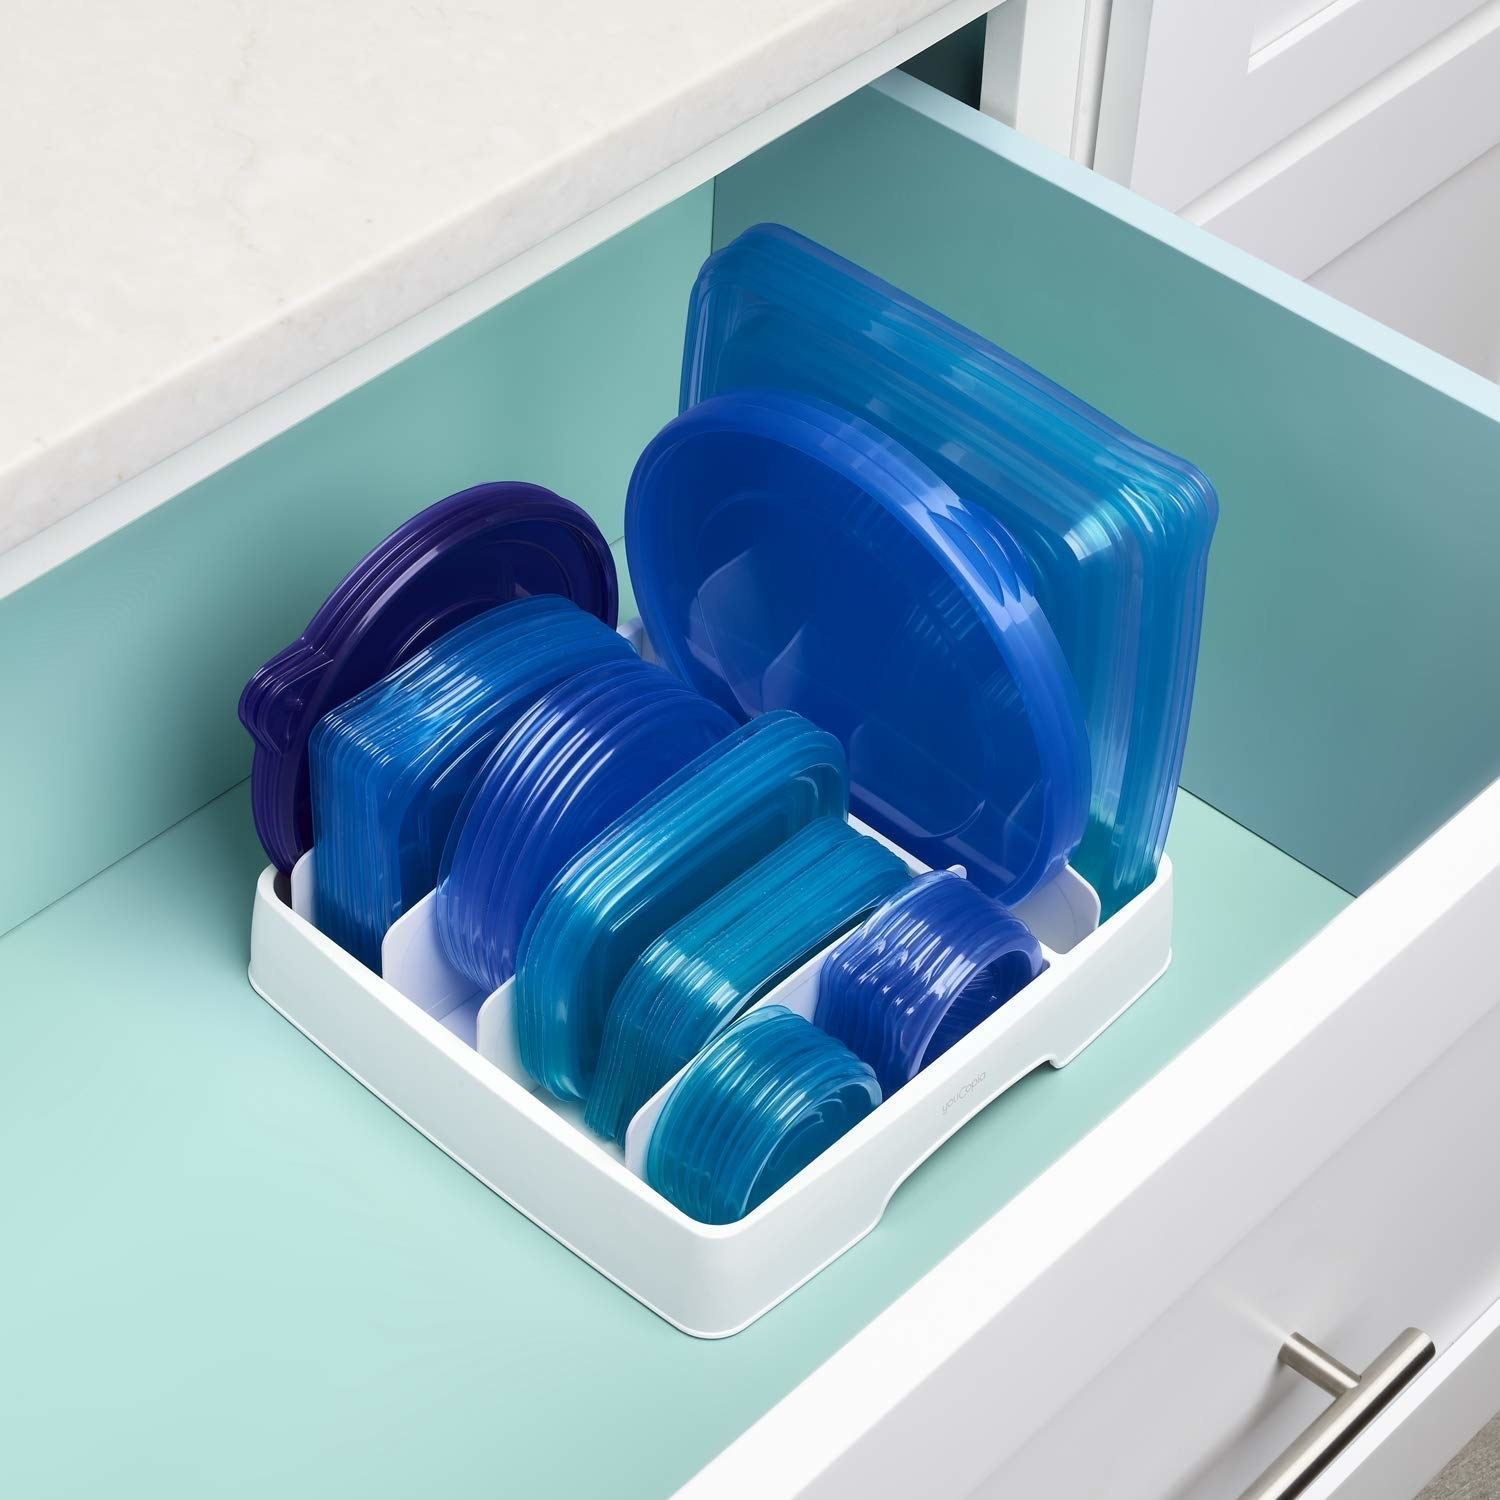 The lid organizer placed inside a kitchen drawer